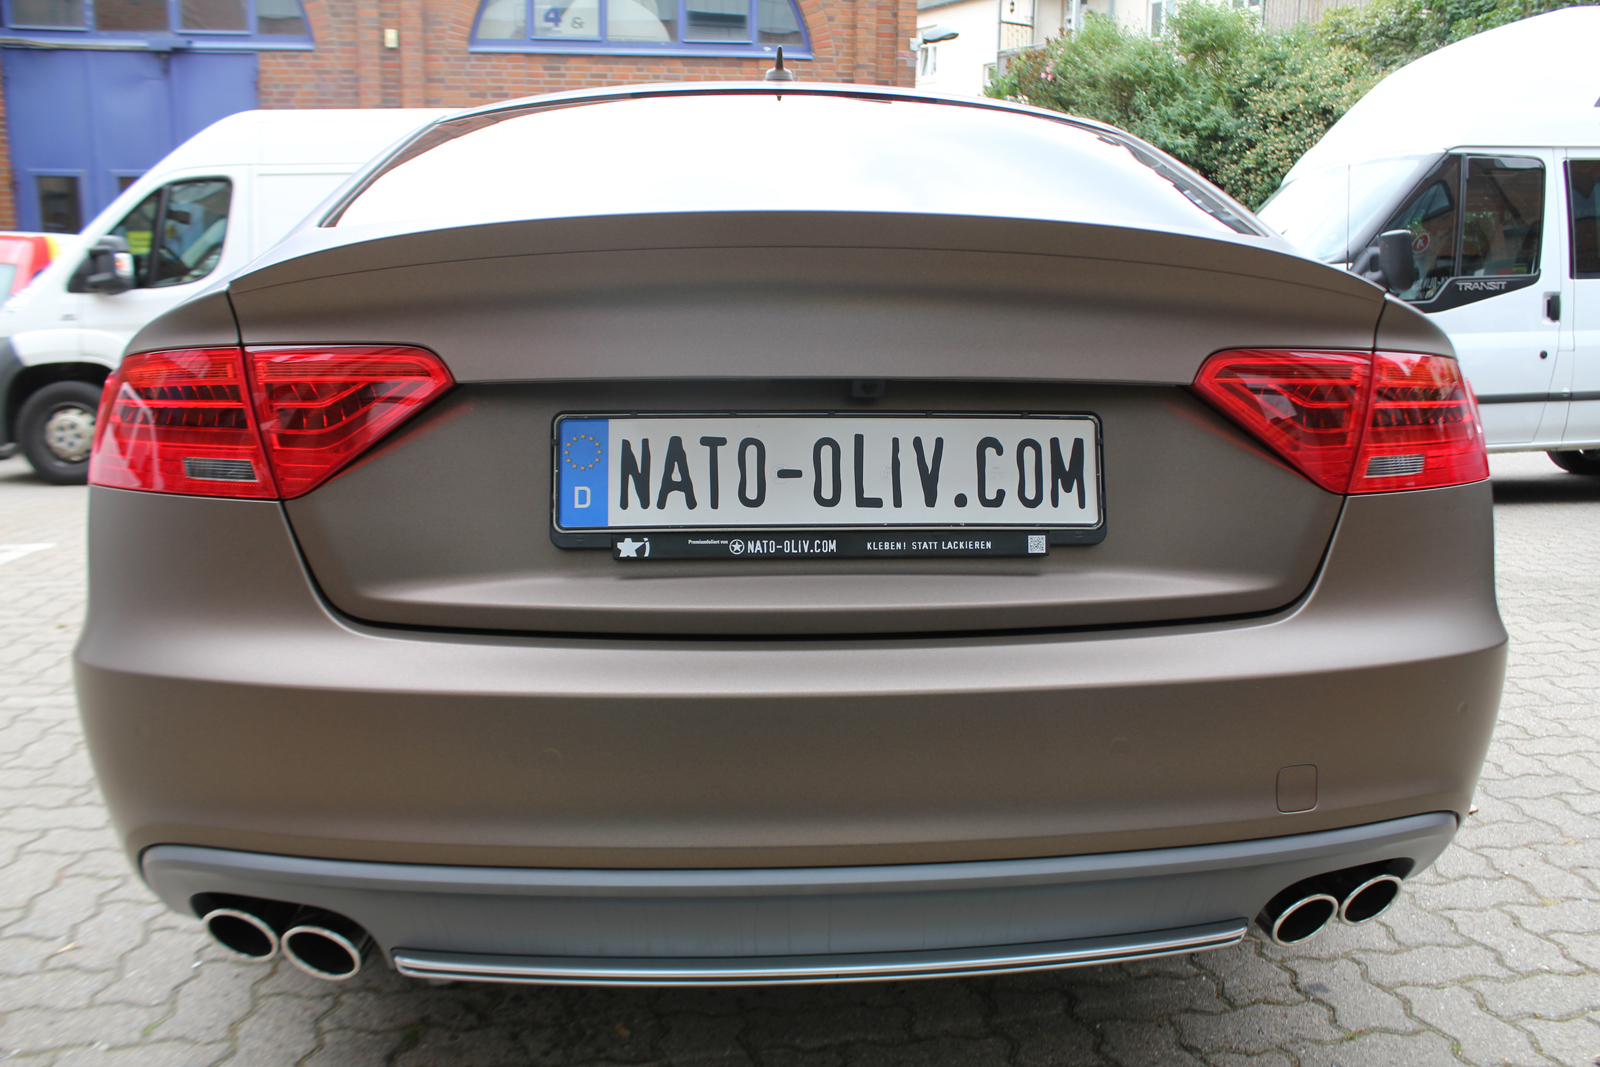 Car Wrapping Auto Folierung Audi S5 Braun Matt Metallic